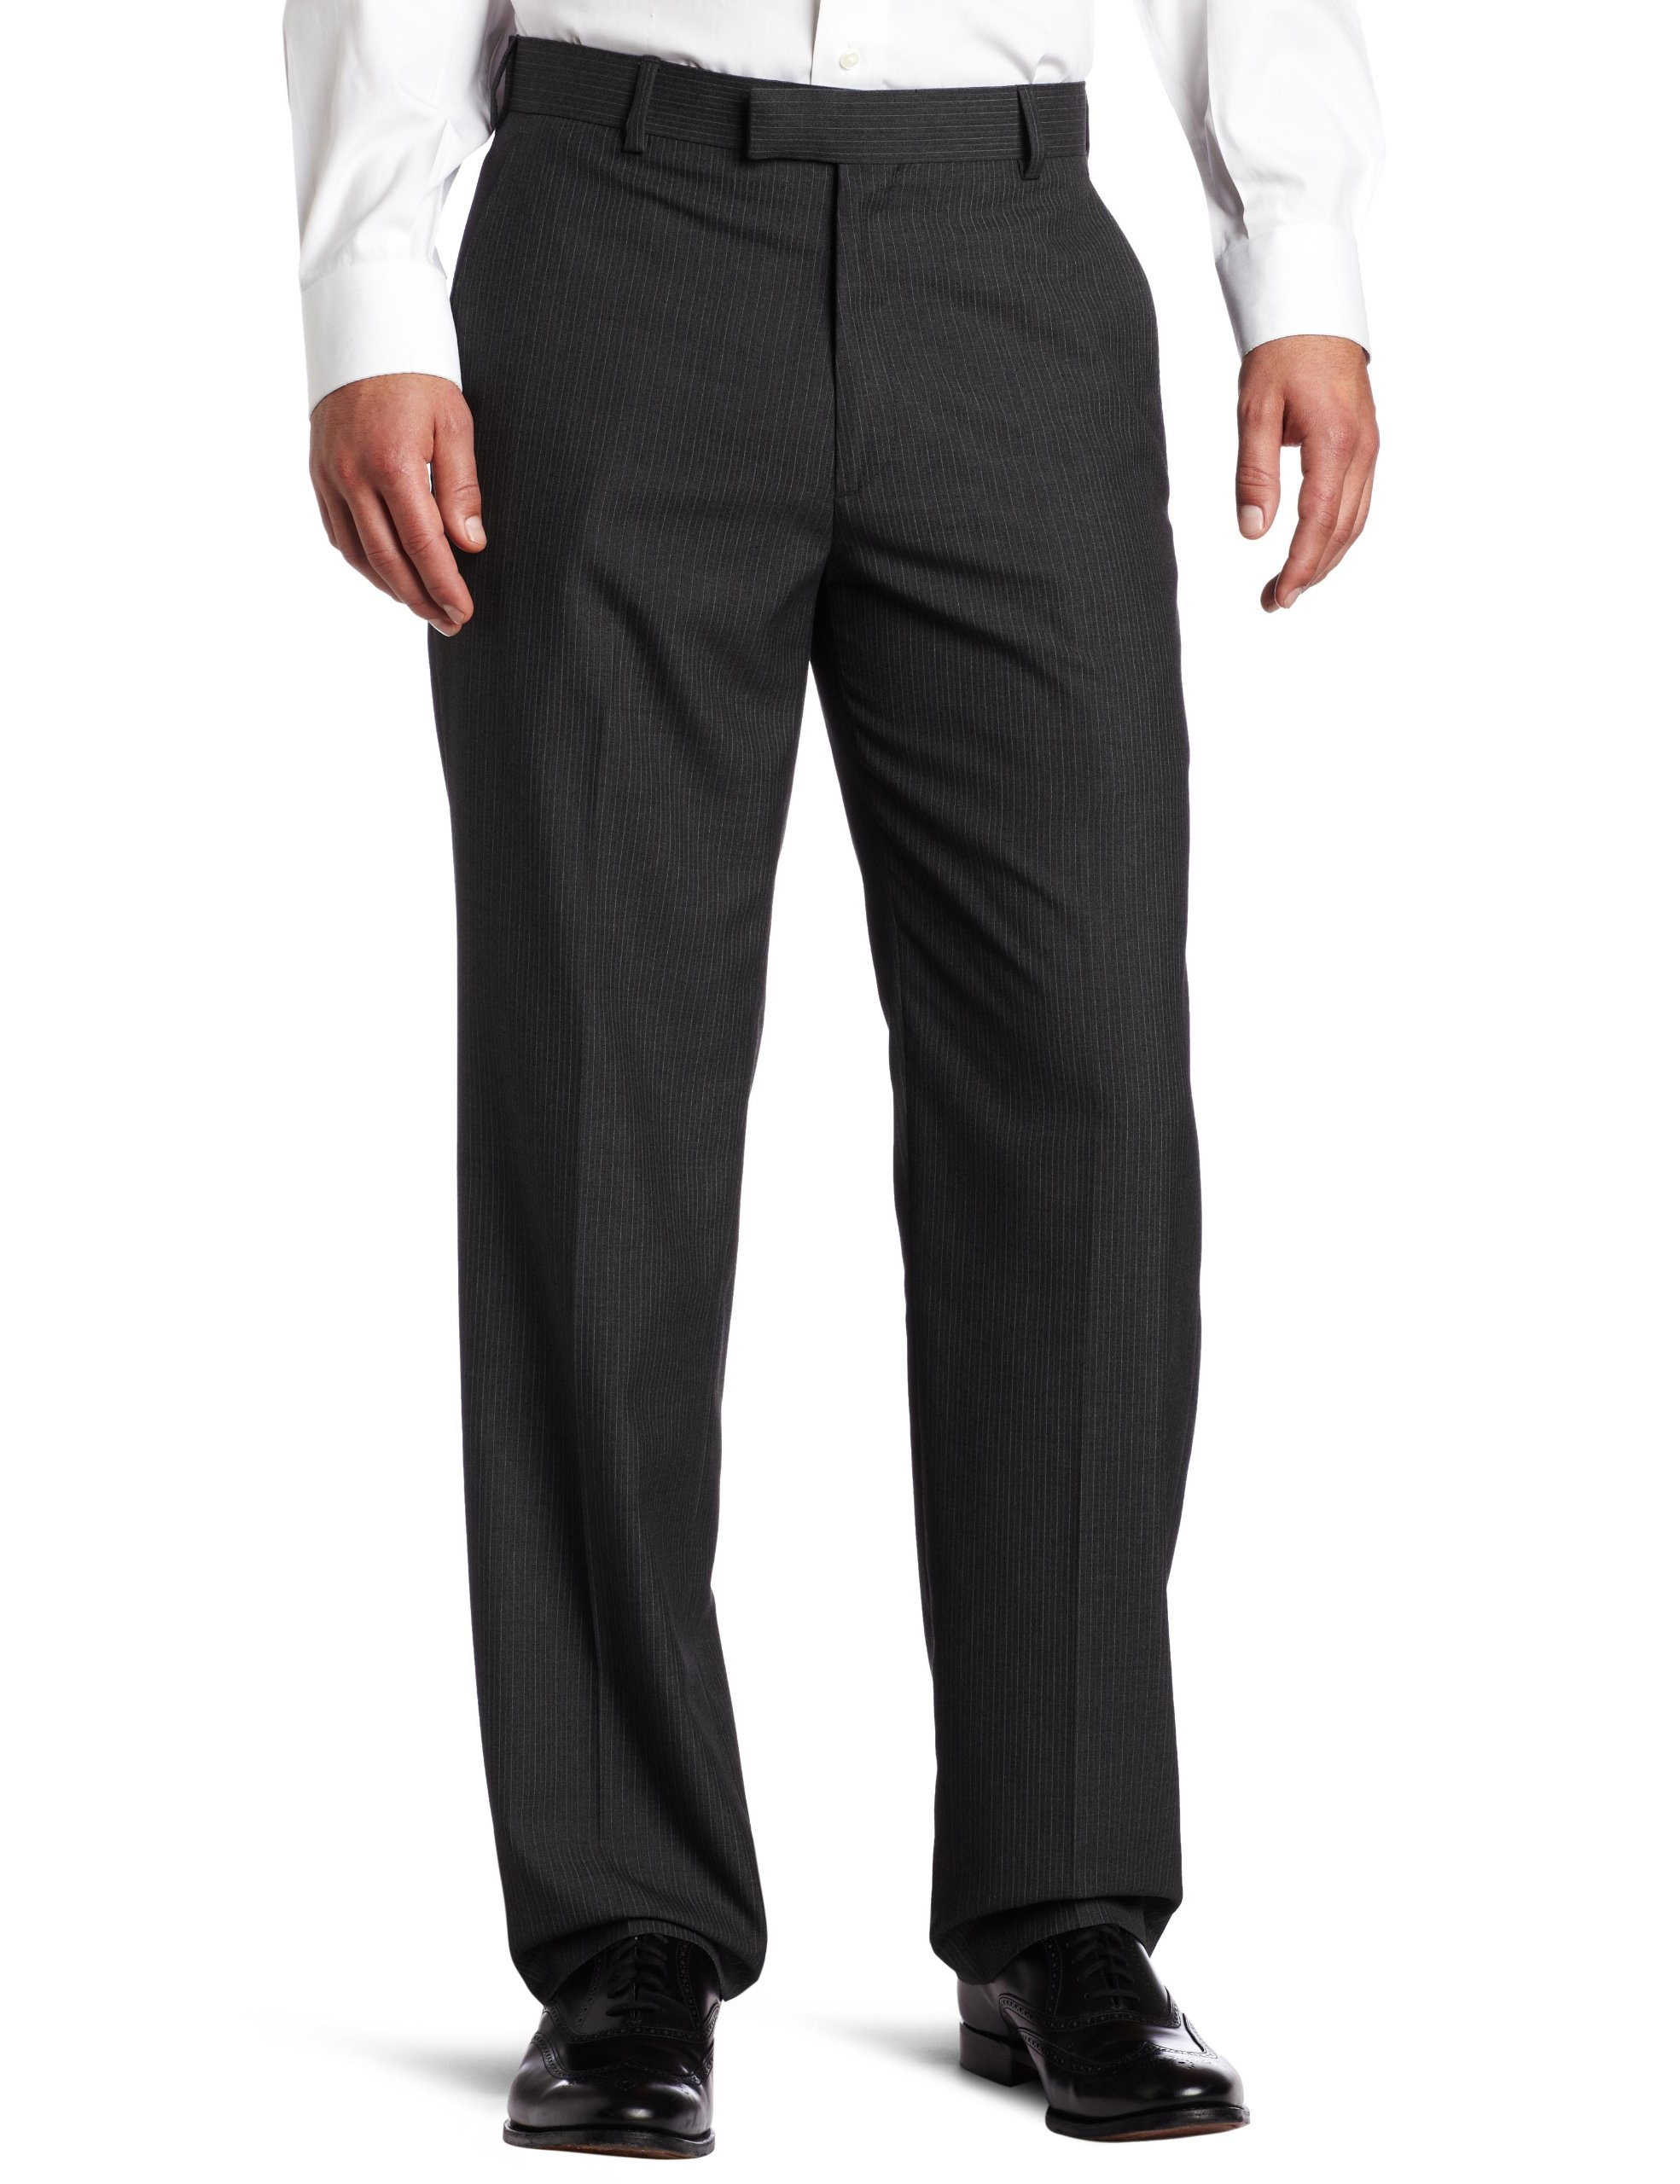 Haggar Men's Textured Pinstripe Tailored Fit Plain Front Suit Separate Pant, Charcoal Heather, 36/34 by Haggar